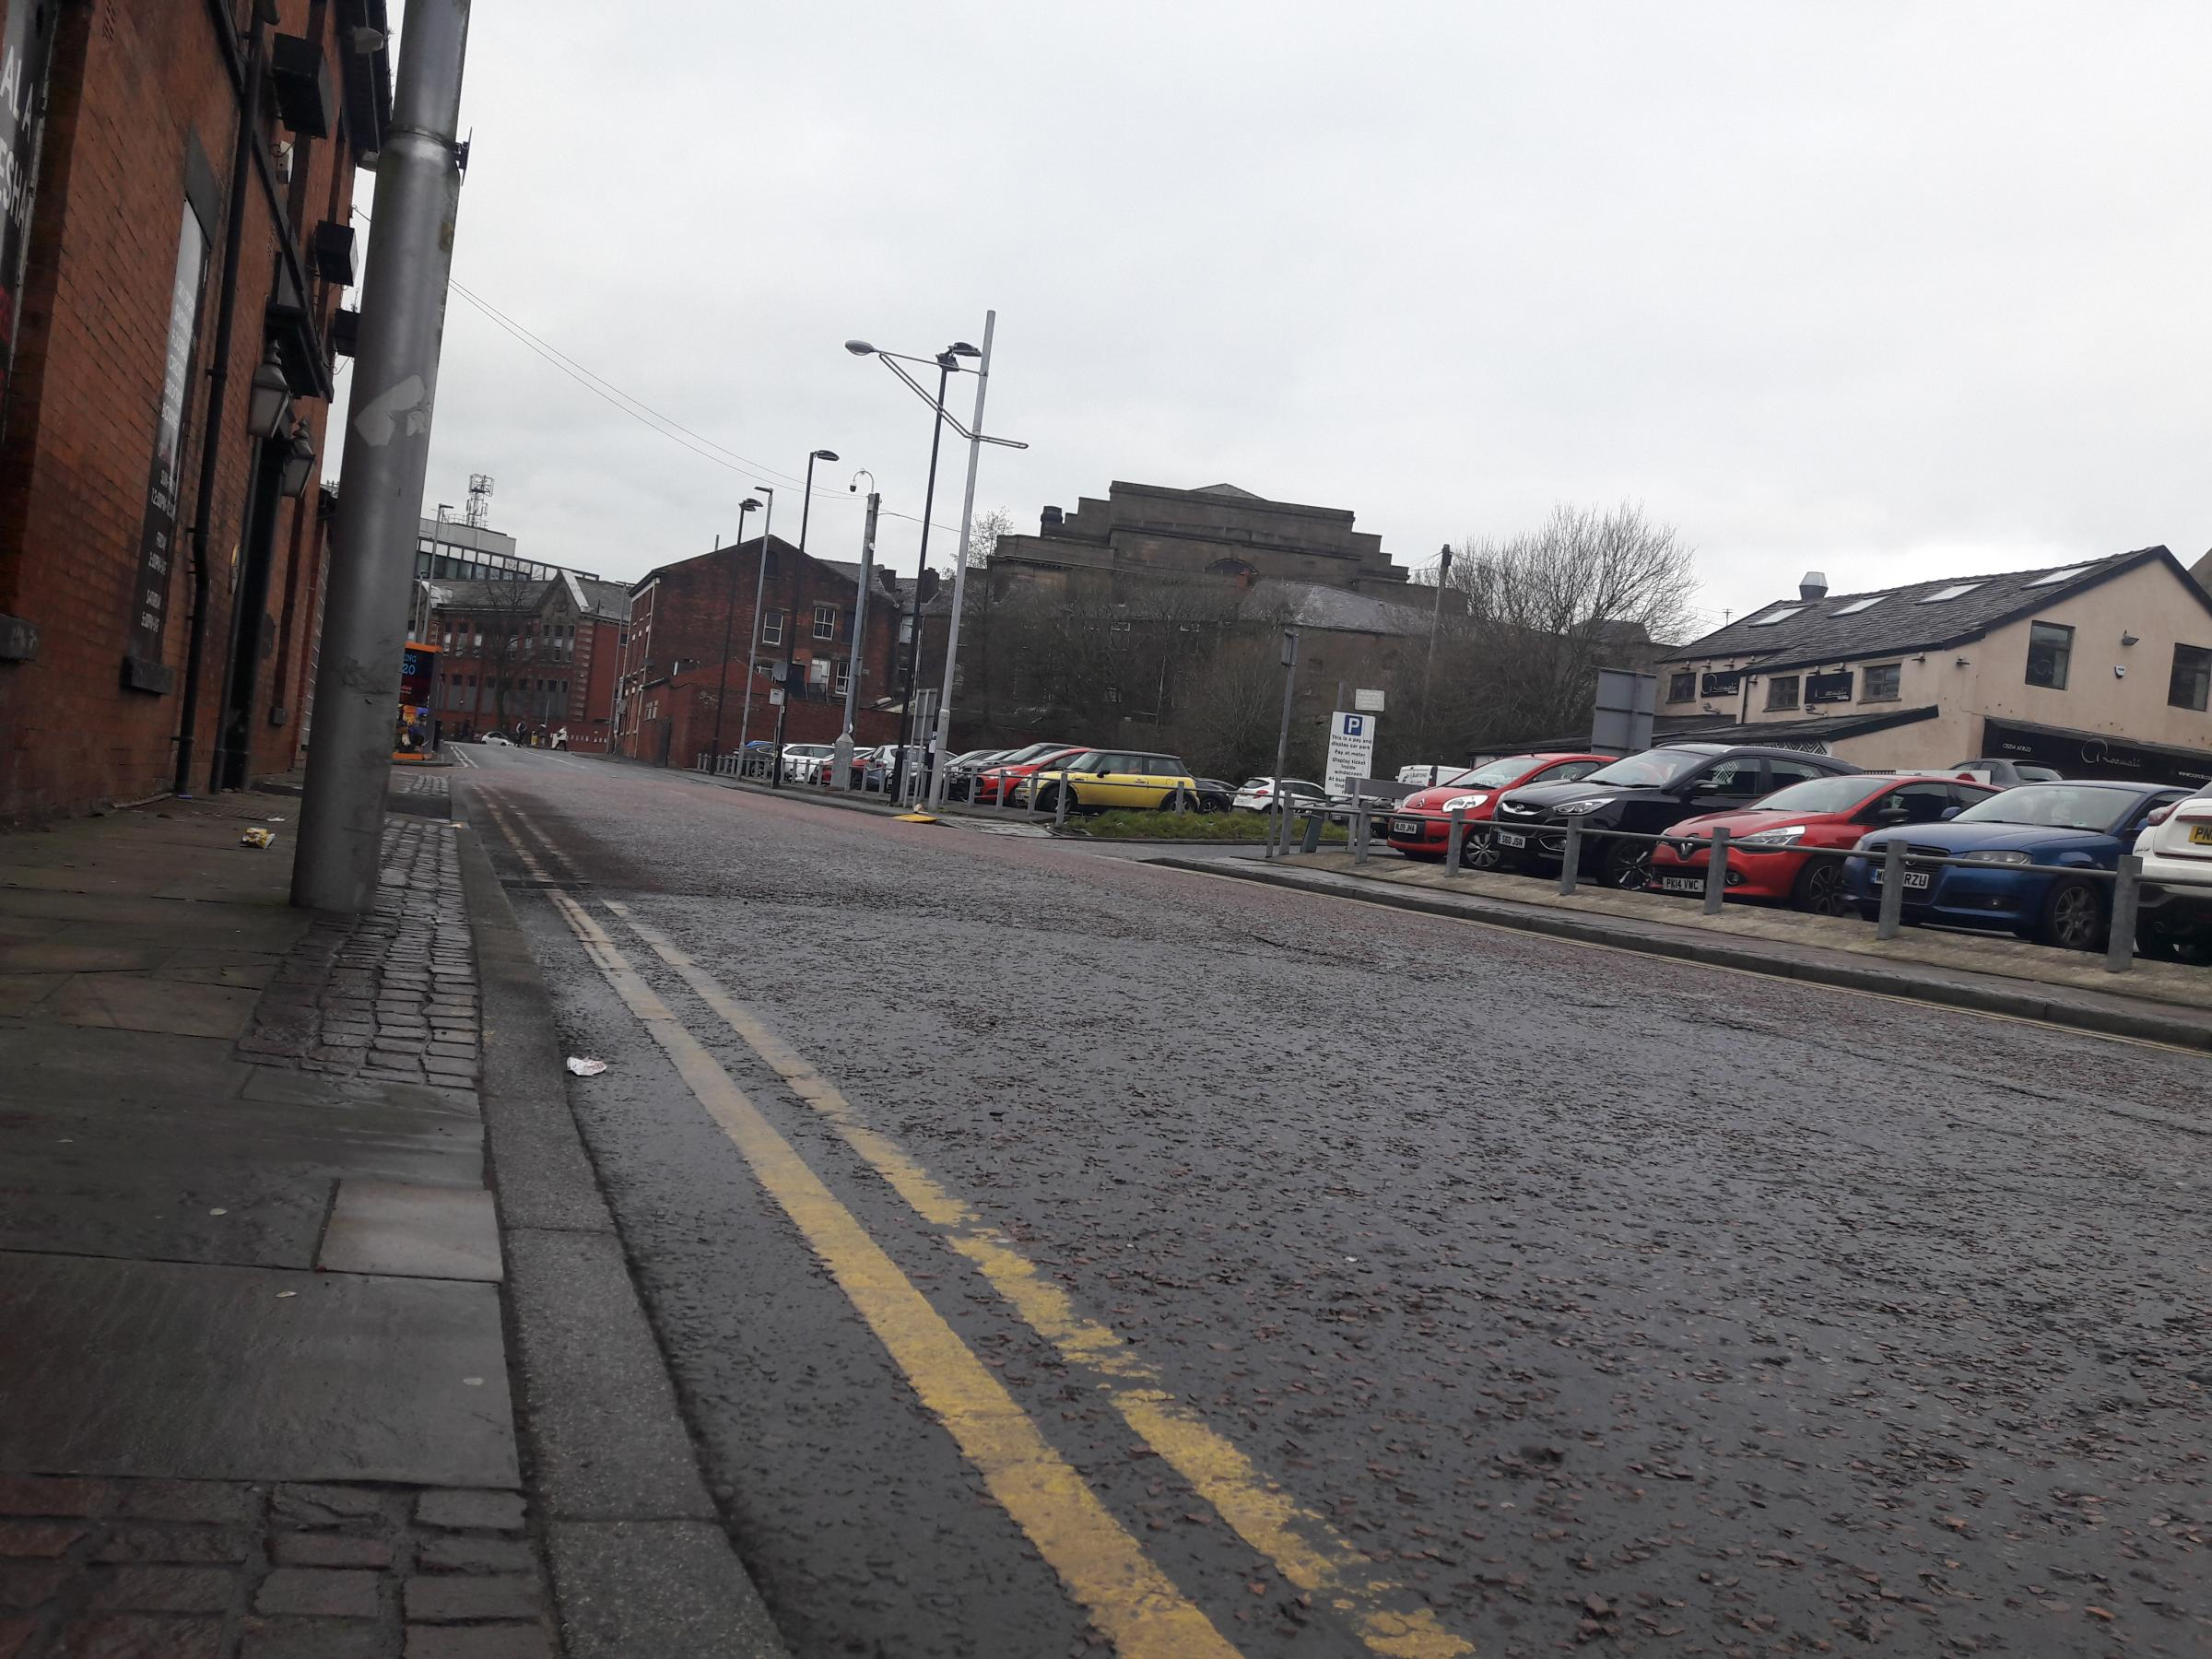 The corner of Barton Street and Cardwell Place, Blackburn